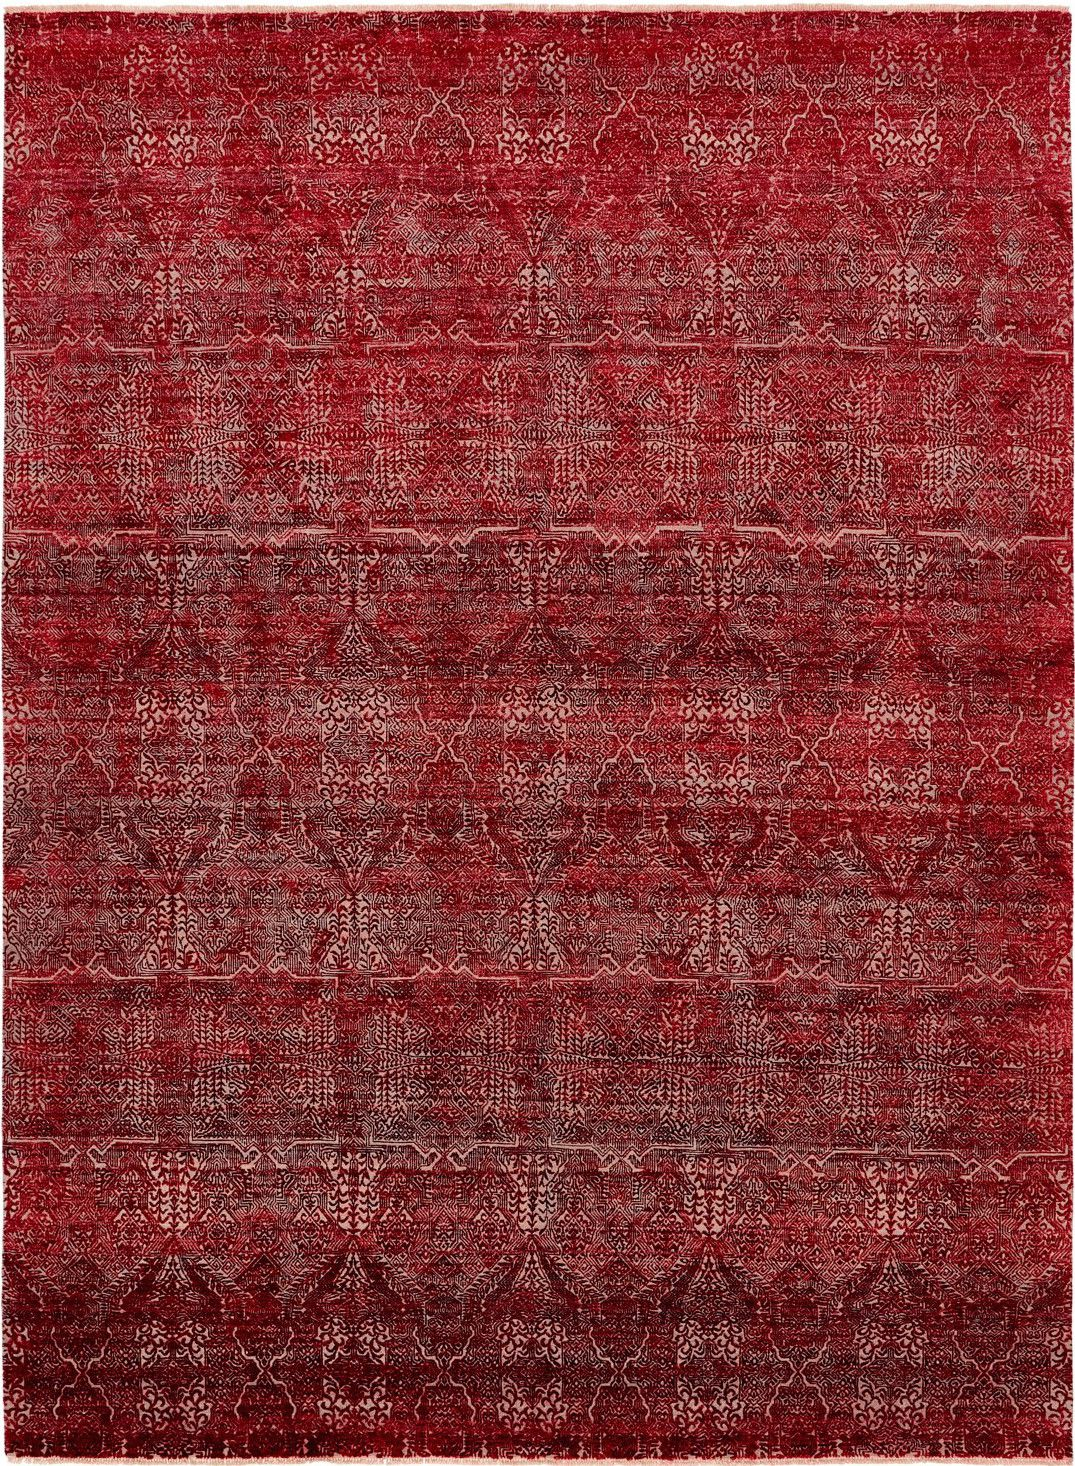 Red rugs 20 best red rugs - red runners and area rugs WKFHRII